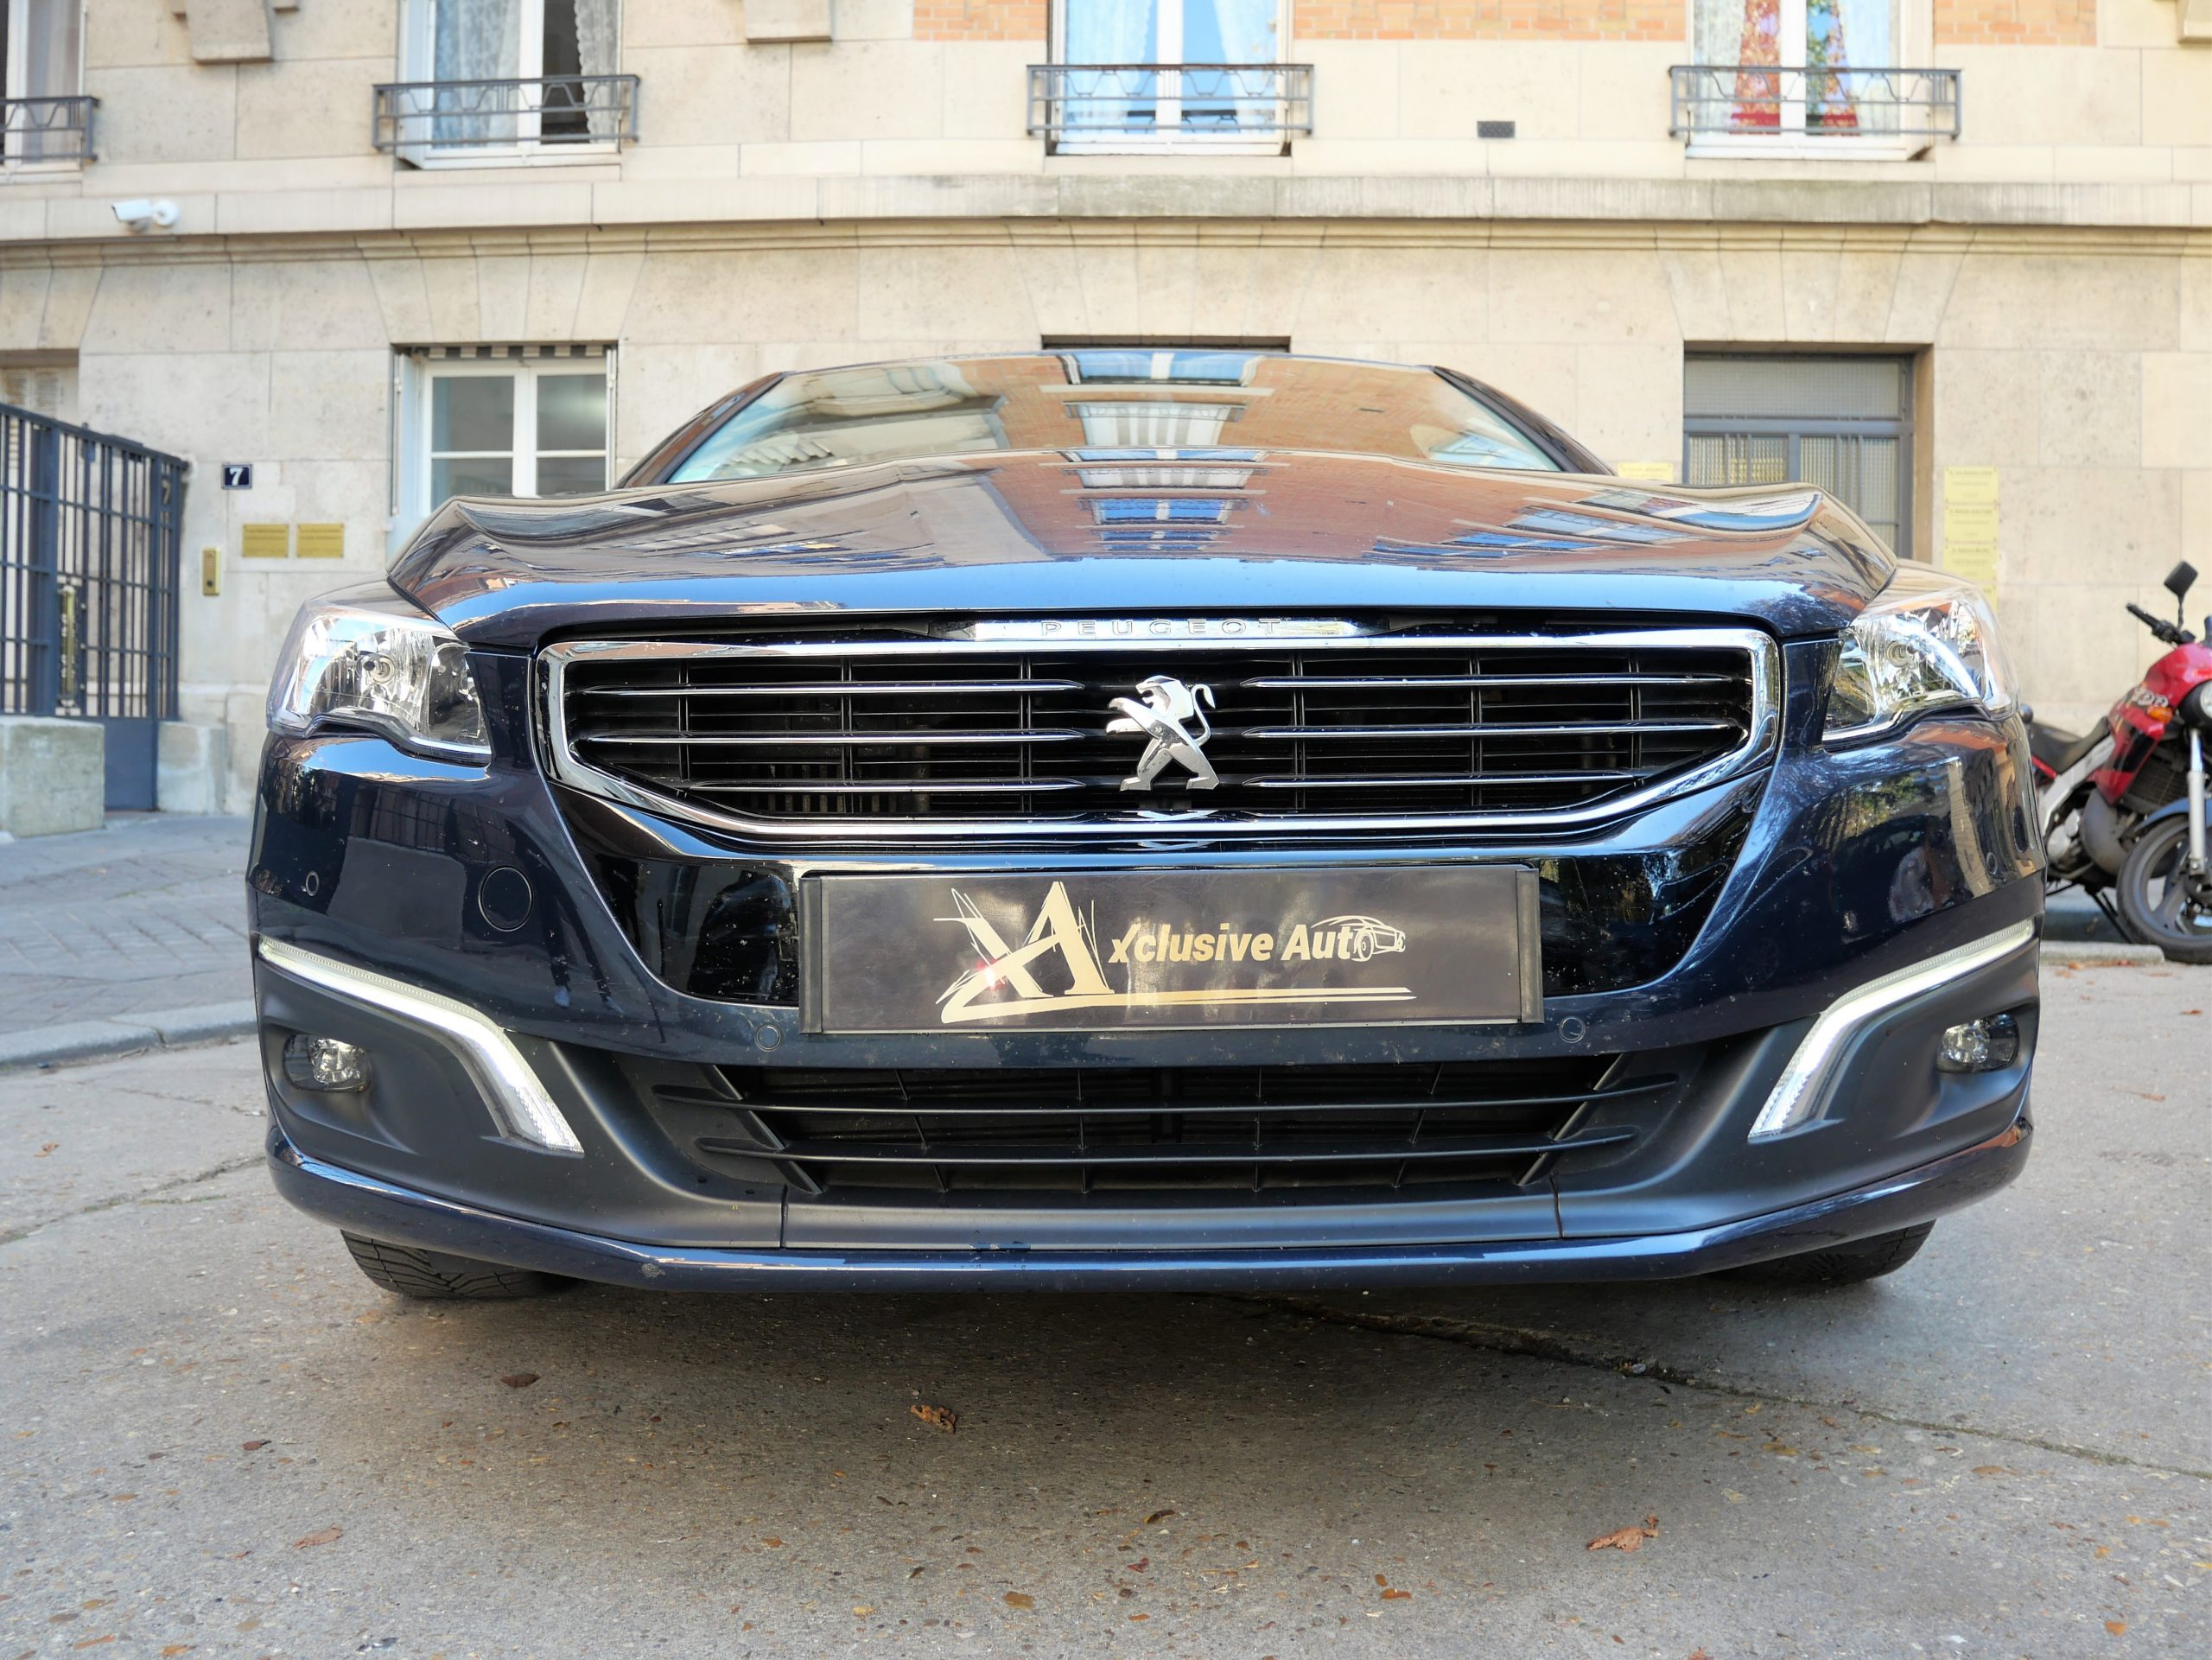 PEUGEOT 508 Allure Phase 2 1.6 BlueHDI S&S 120 ch 7